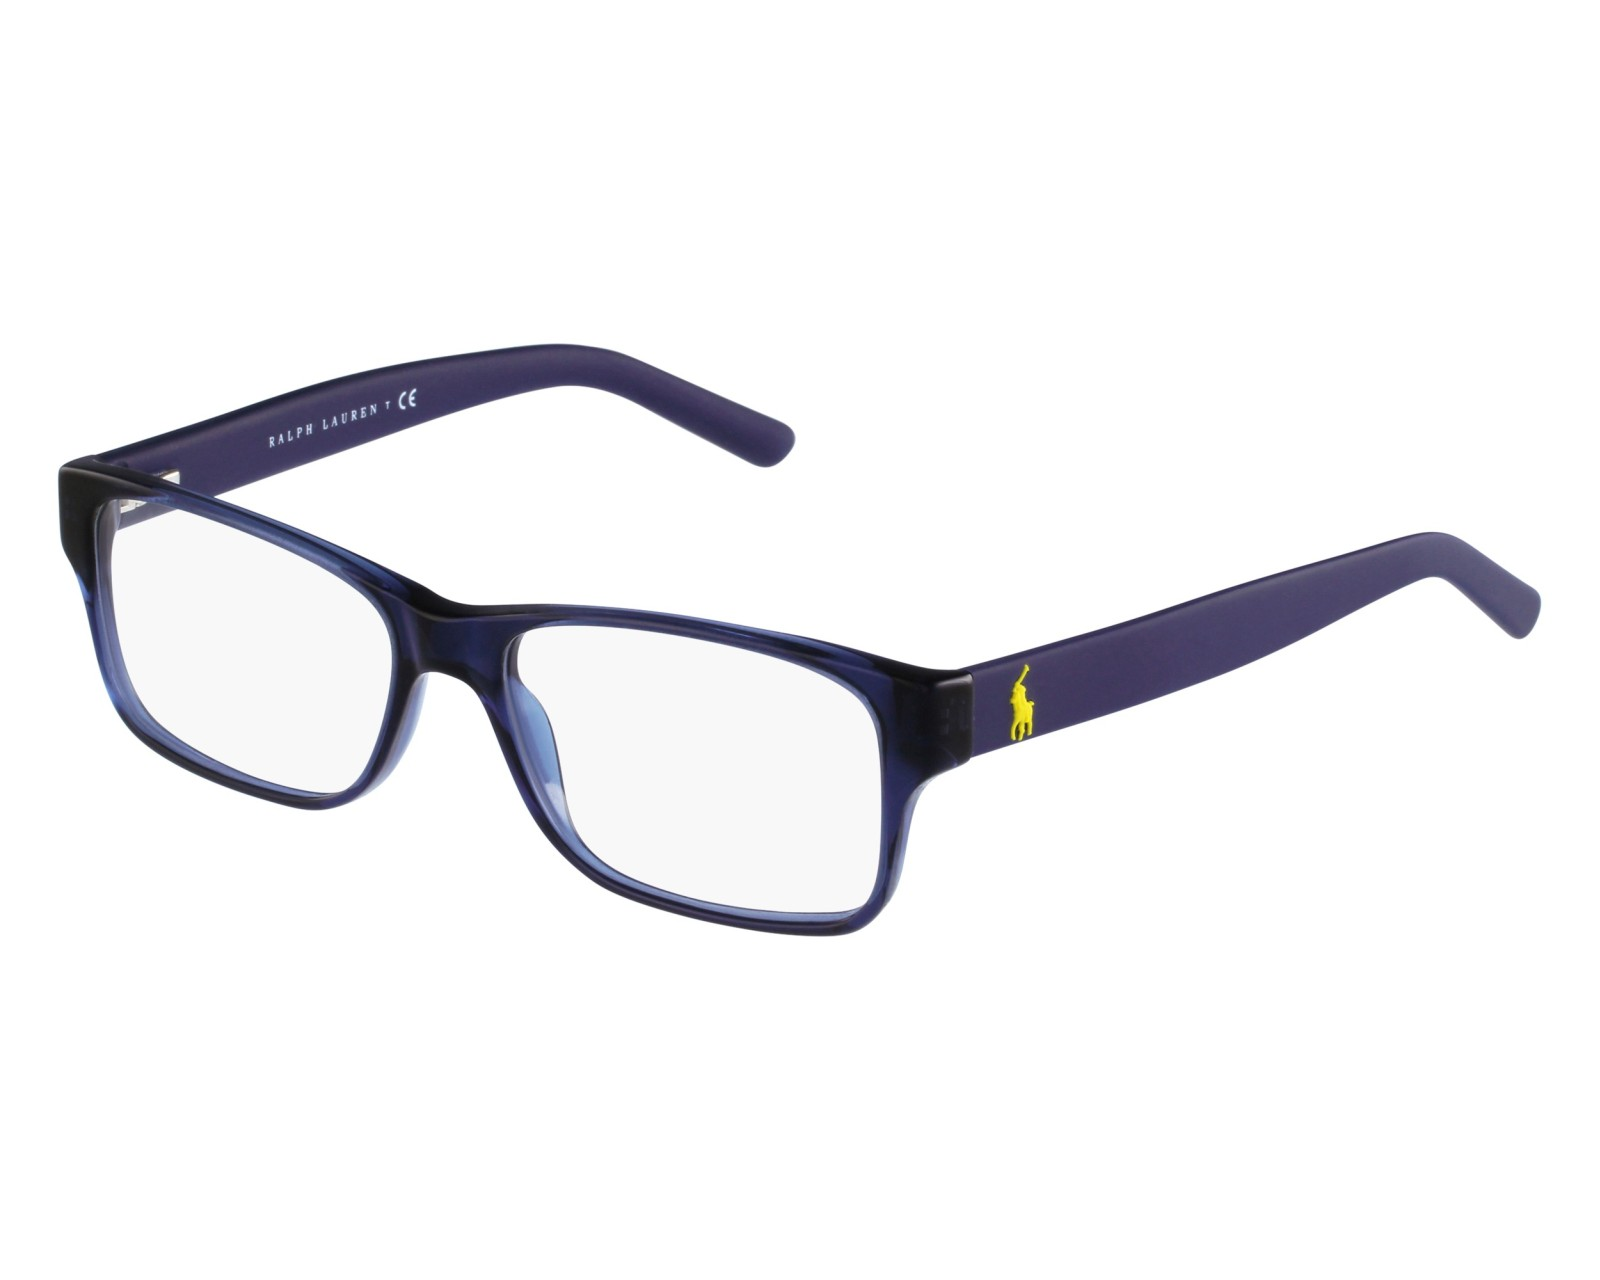 22578e1958b eyeglasses Polo Ralph Lauren PH-2117 5470 52-16 Blue front view